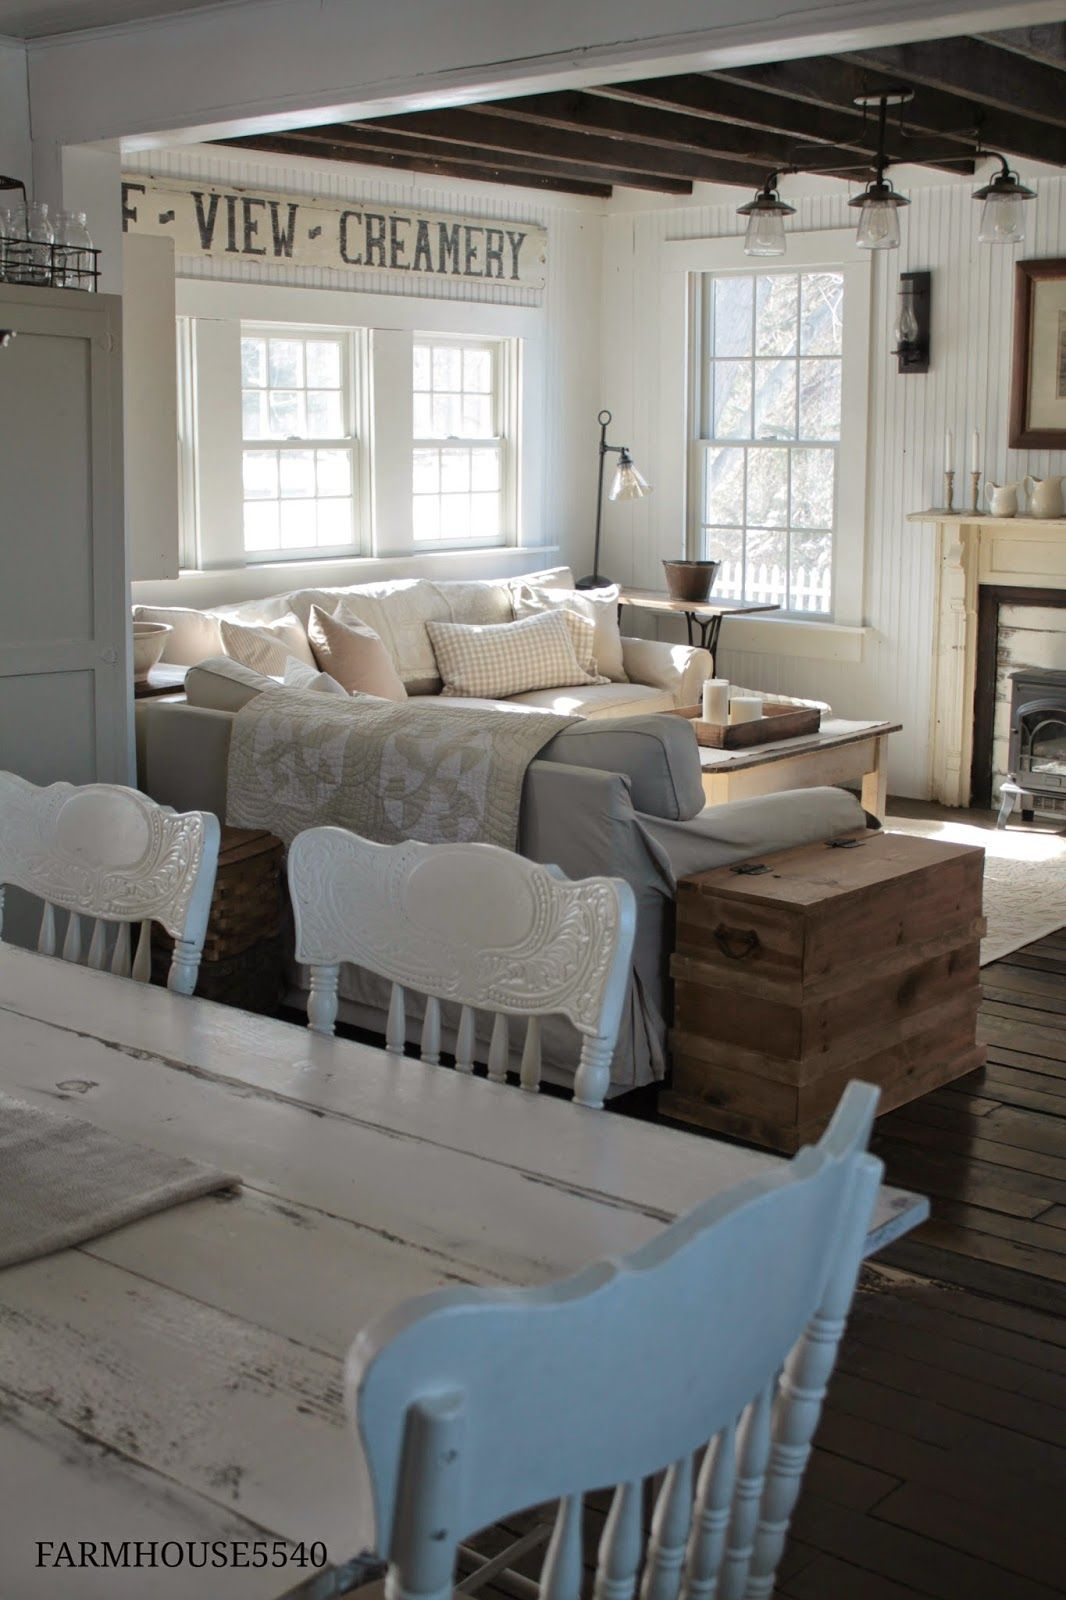 Farmhouse Chic Living Room Decor: FARMHOUSE 5540 Love The Painted Chairs